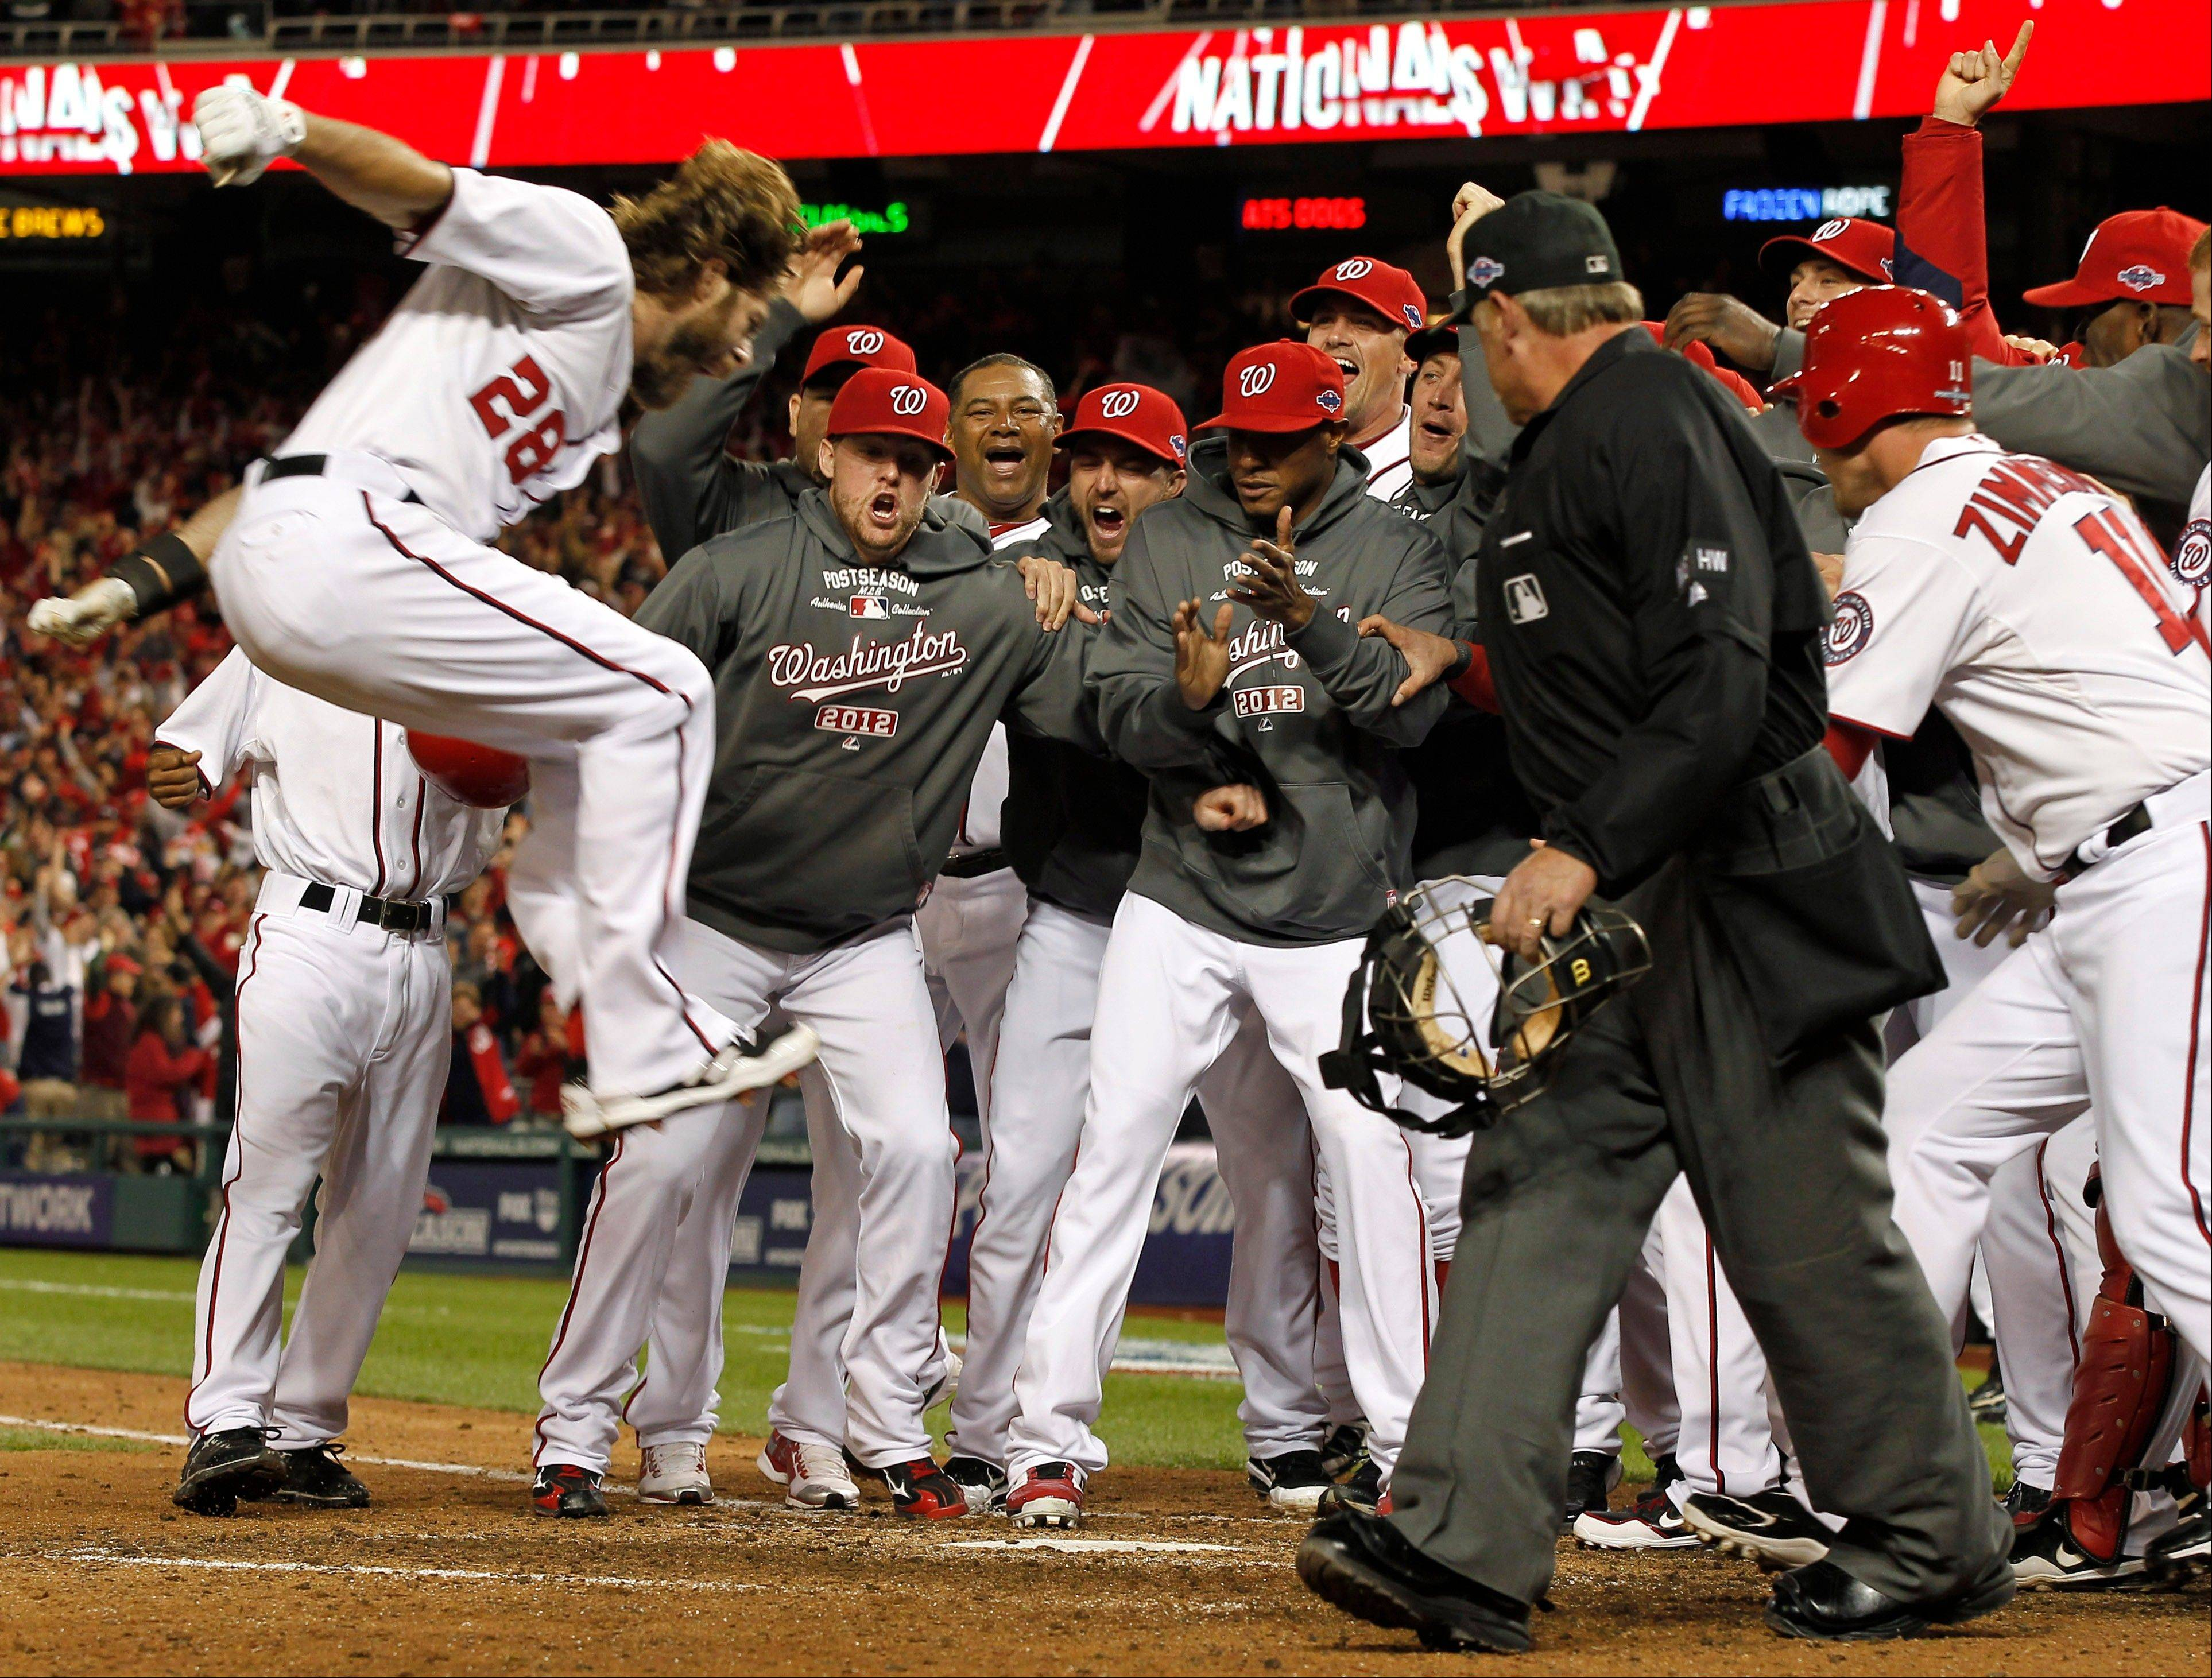 Werth's homer for Nationals forces Game 5 against Cards